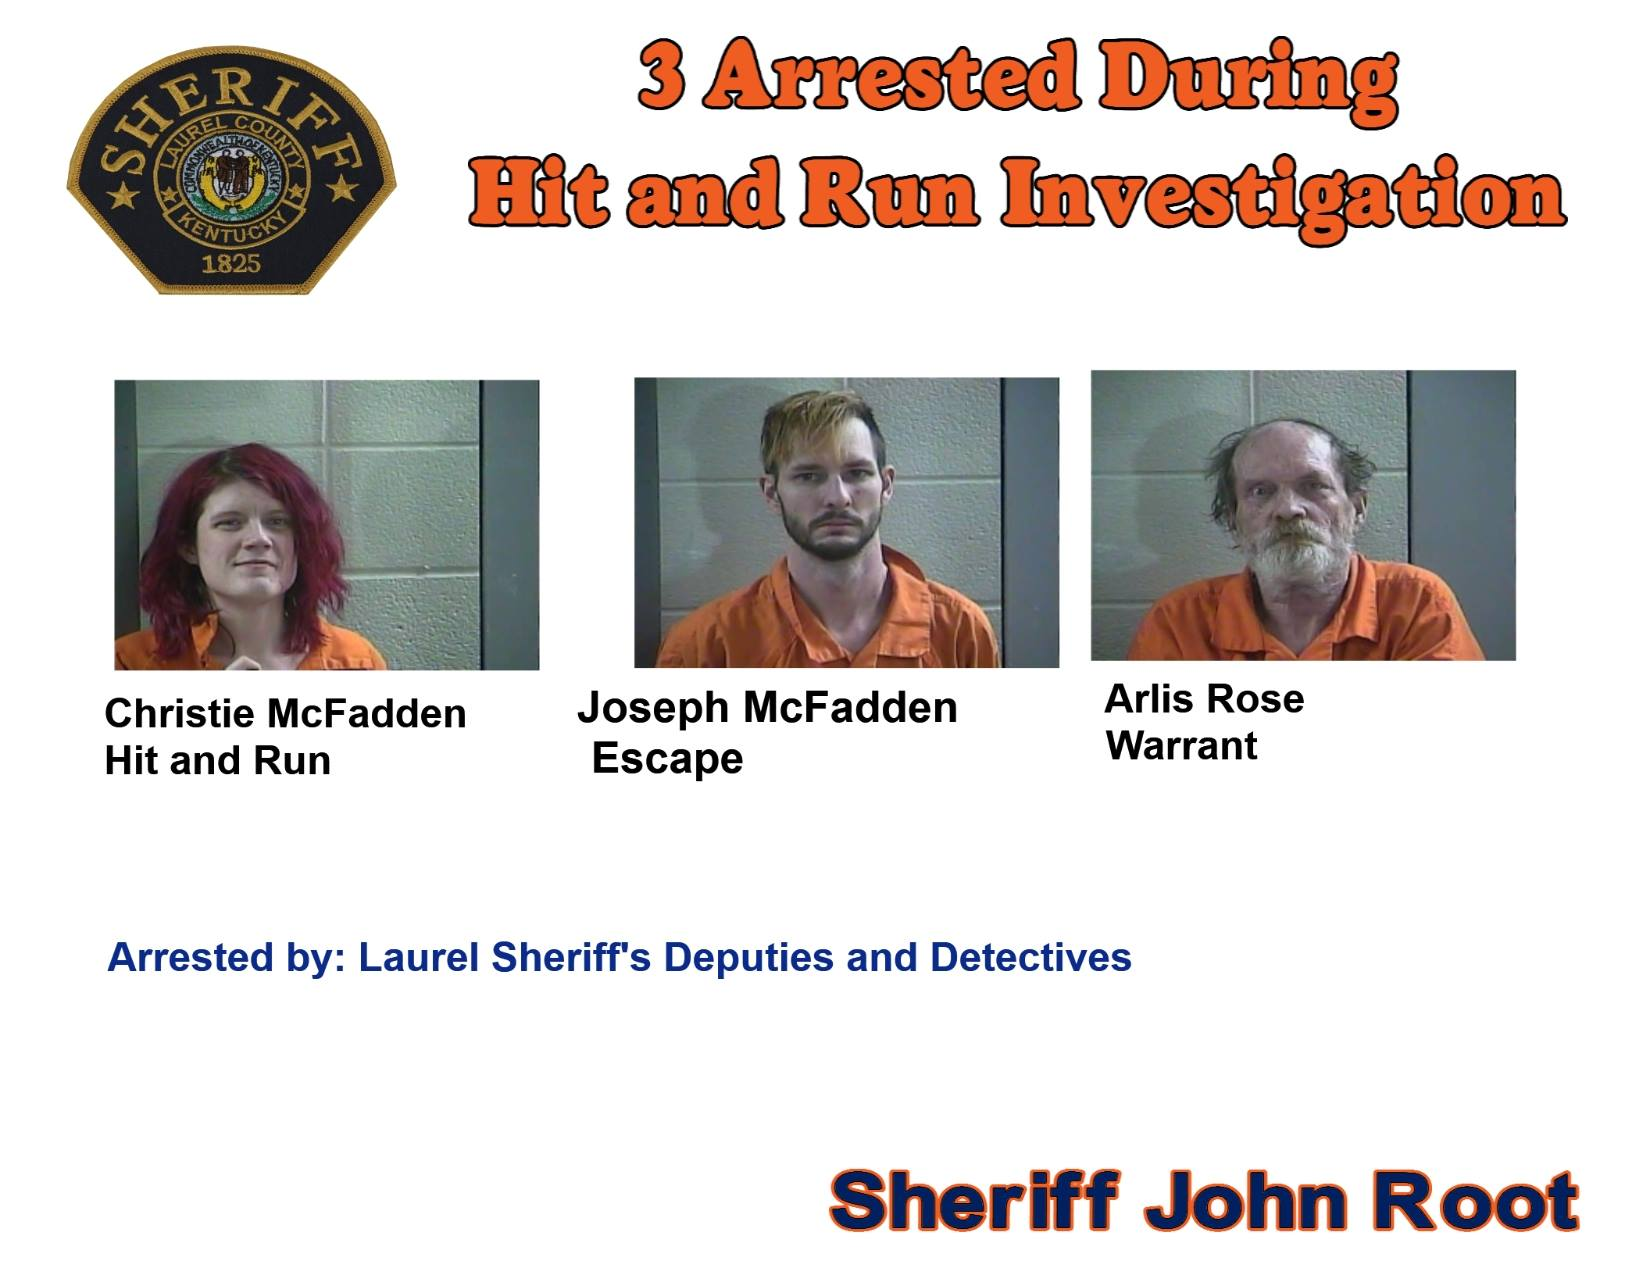 Laurel County Police Arrest 3 People After Hit And Run